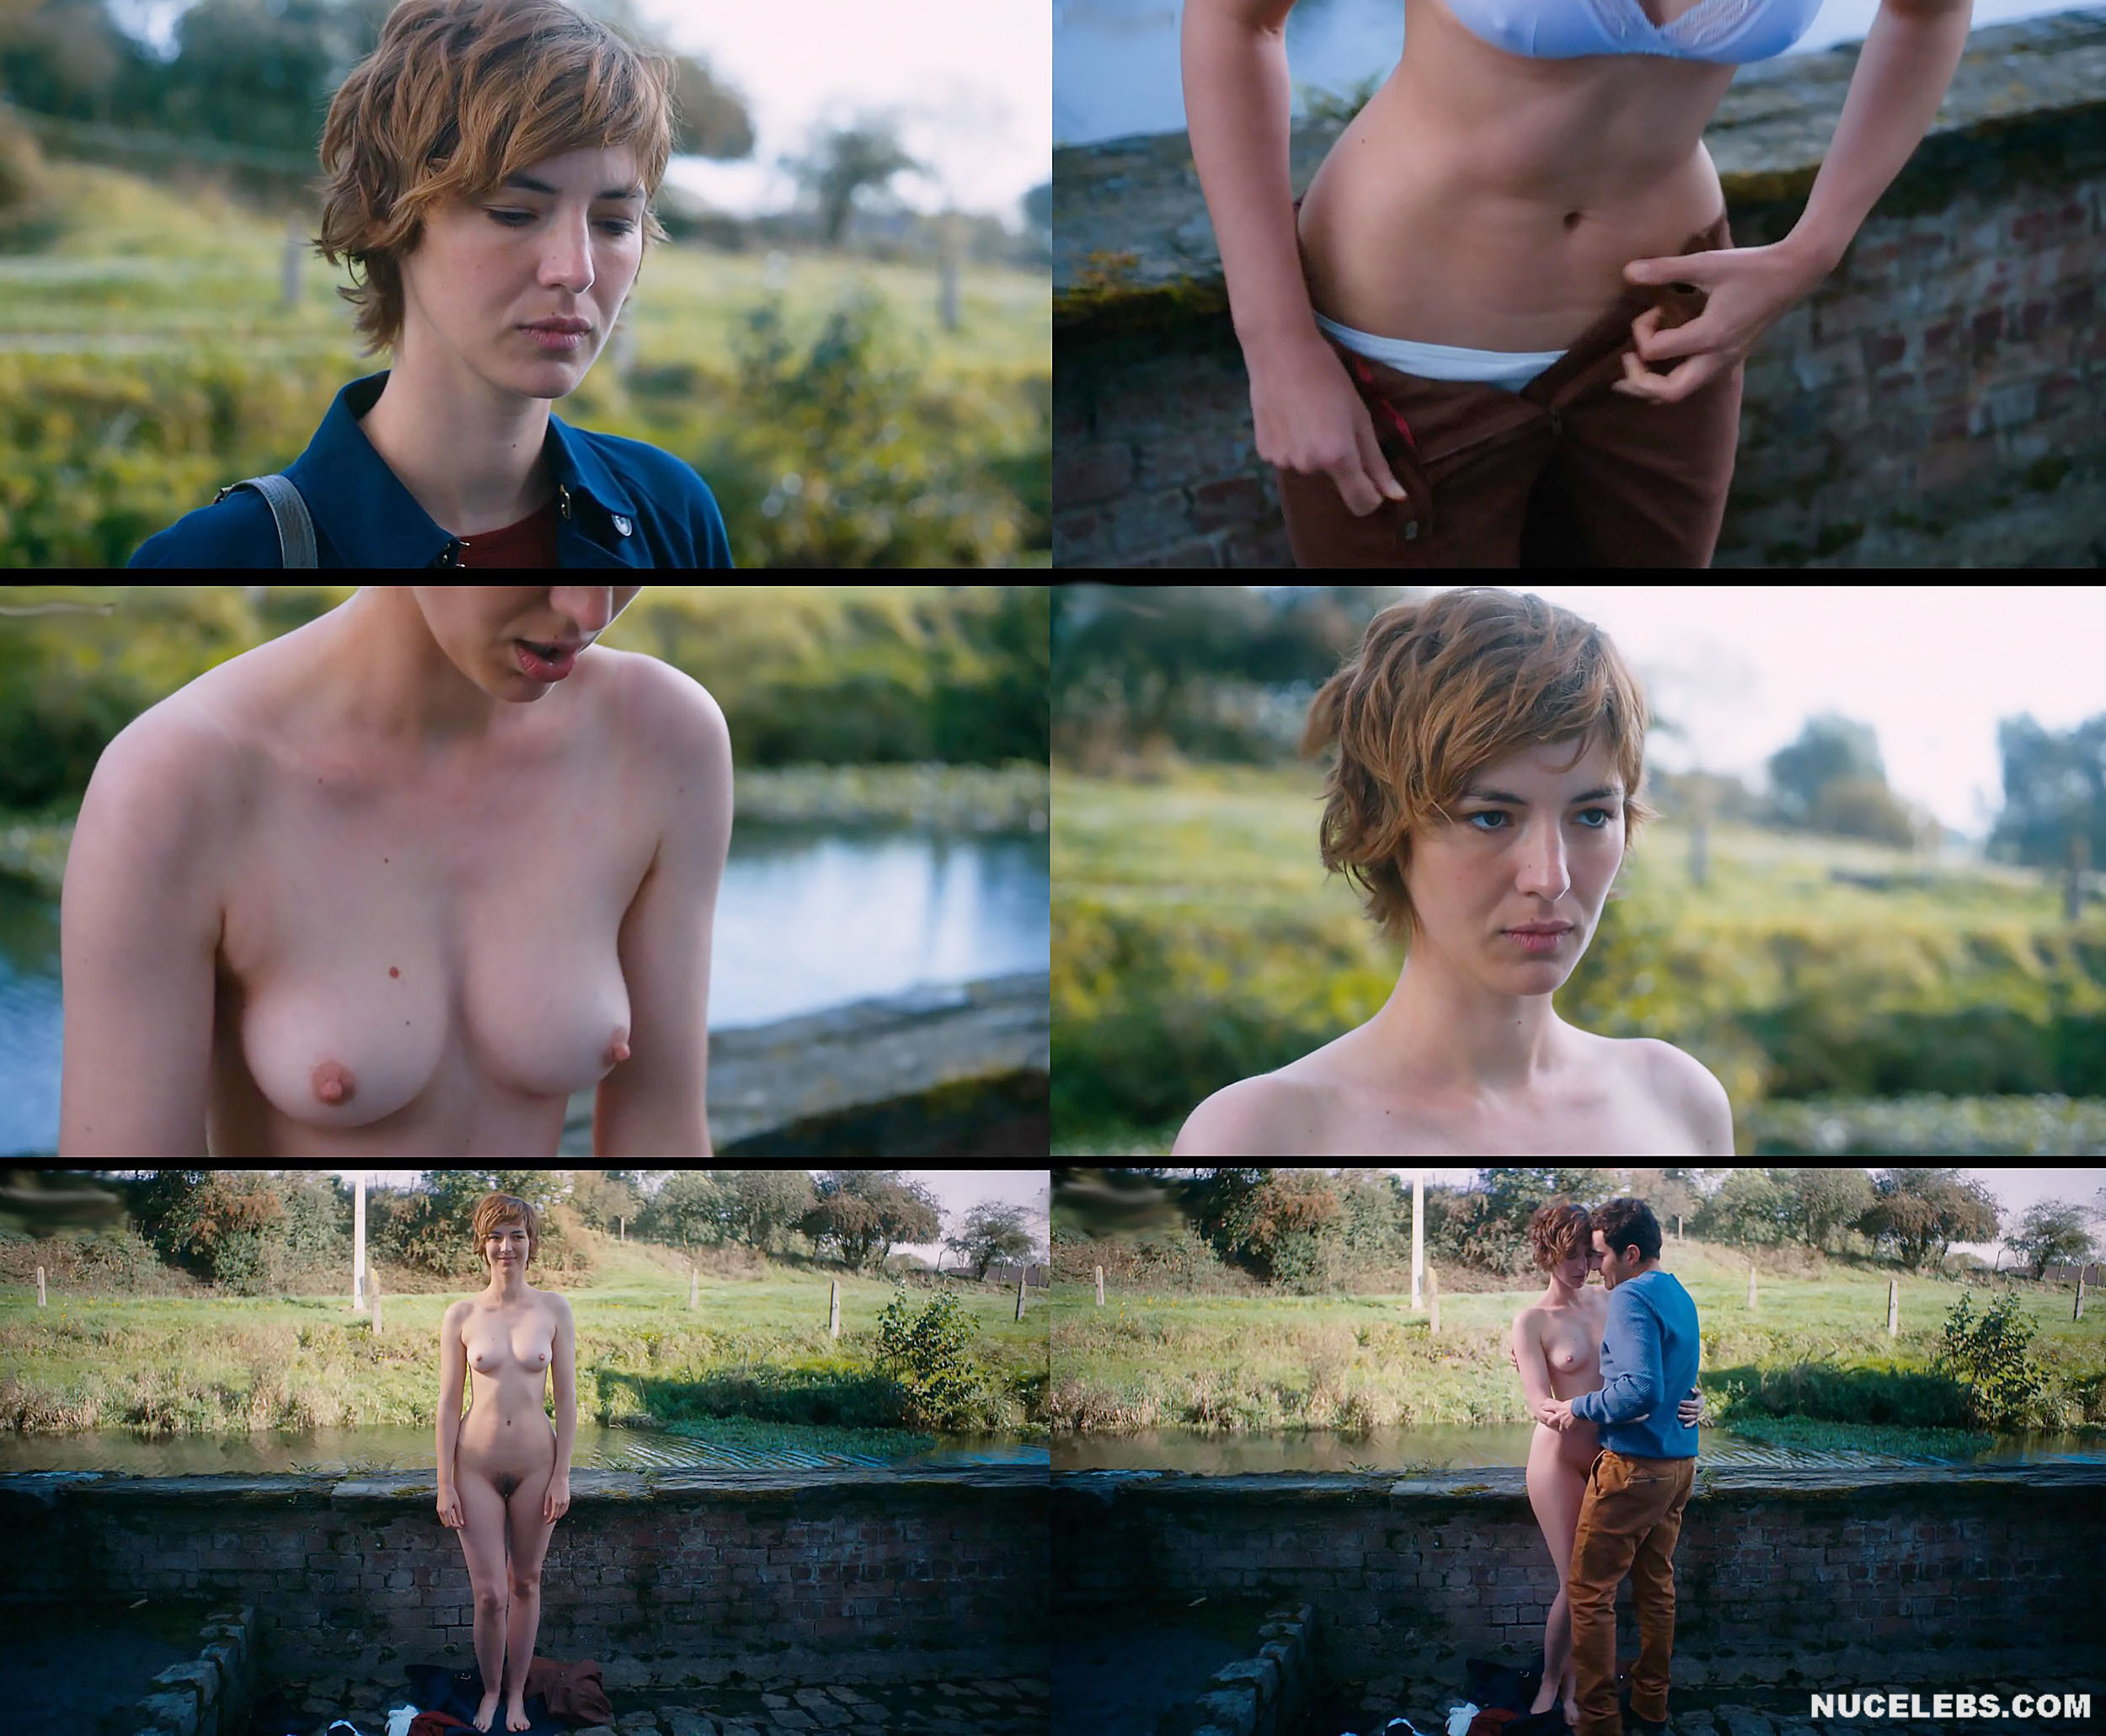 Louise bourgoin nackt